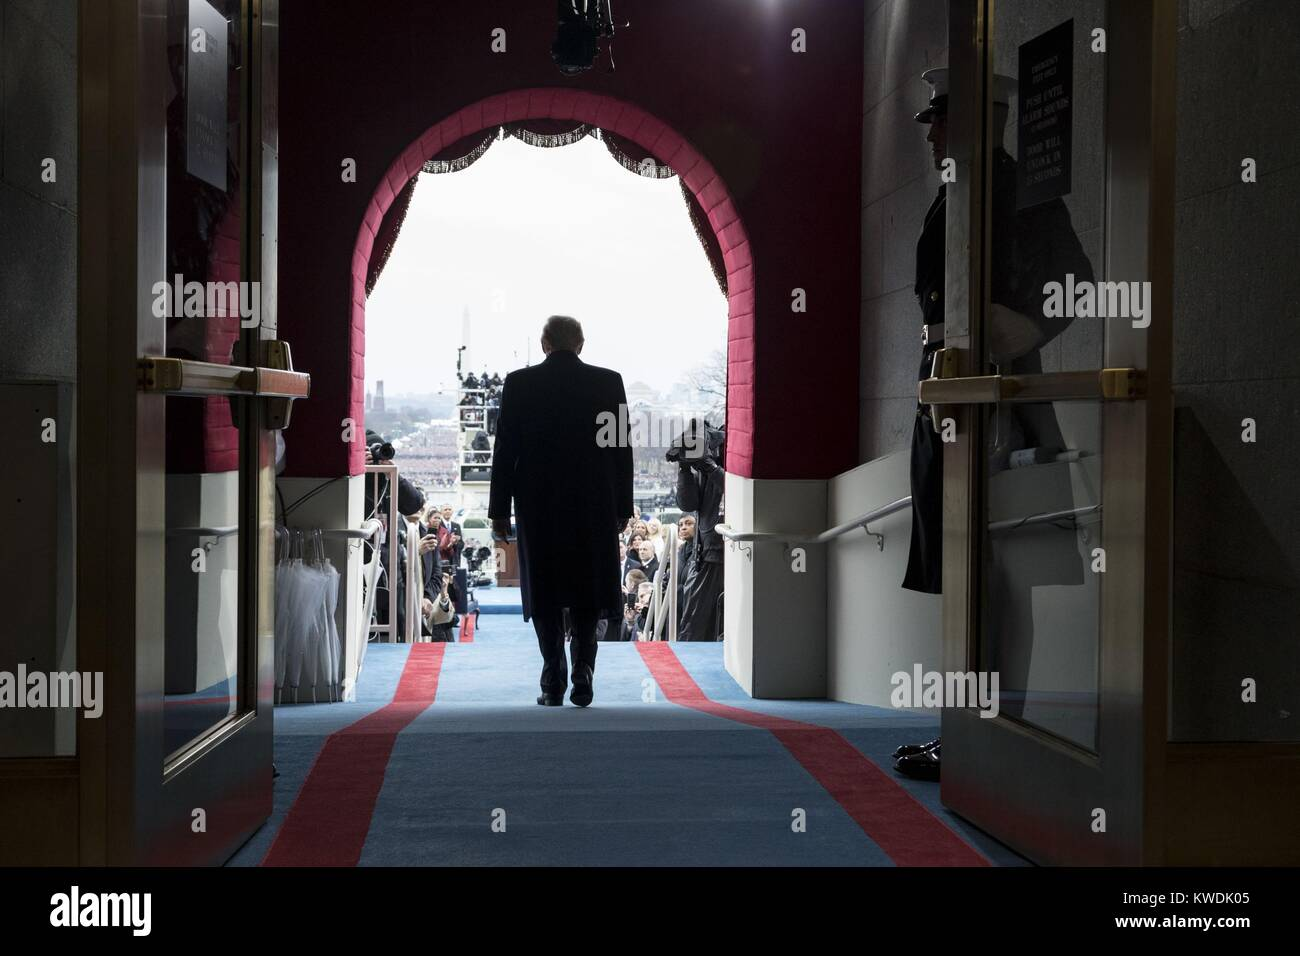 Back view of President-elect Donald Trump walking to his inaugural swearing-in ceremony. Jan. 19, 2017 (BSLOC_2017 - Stock Image